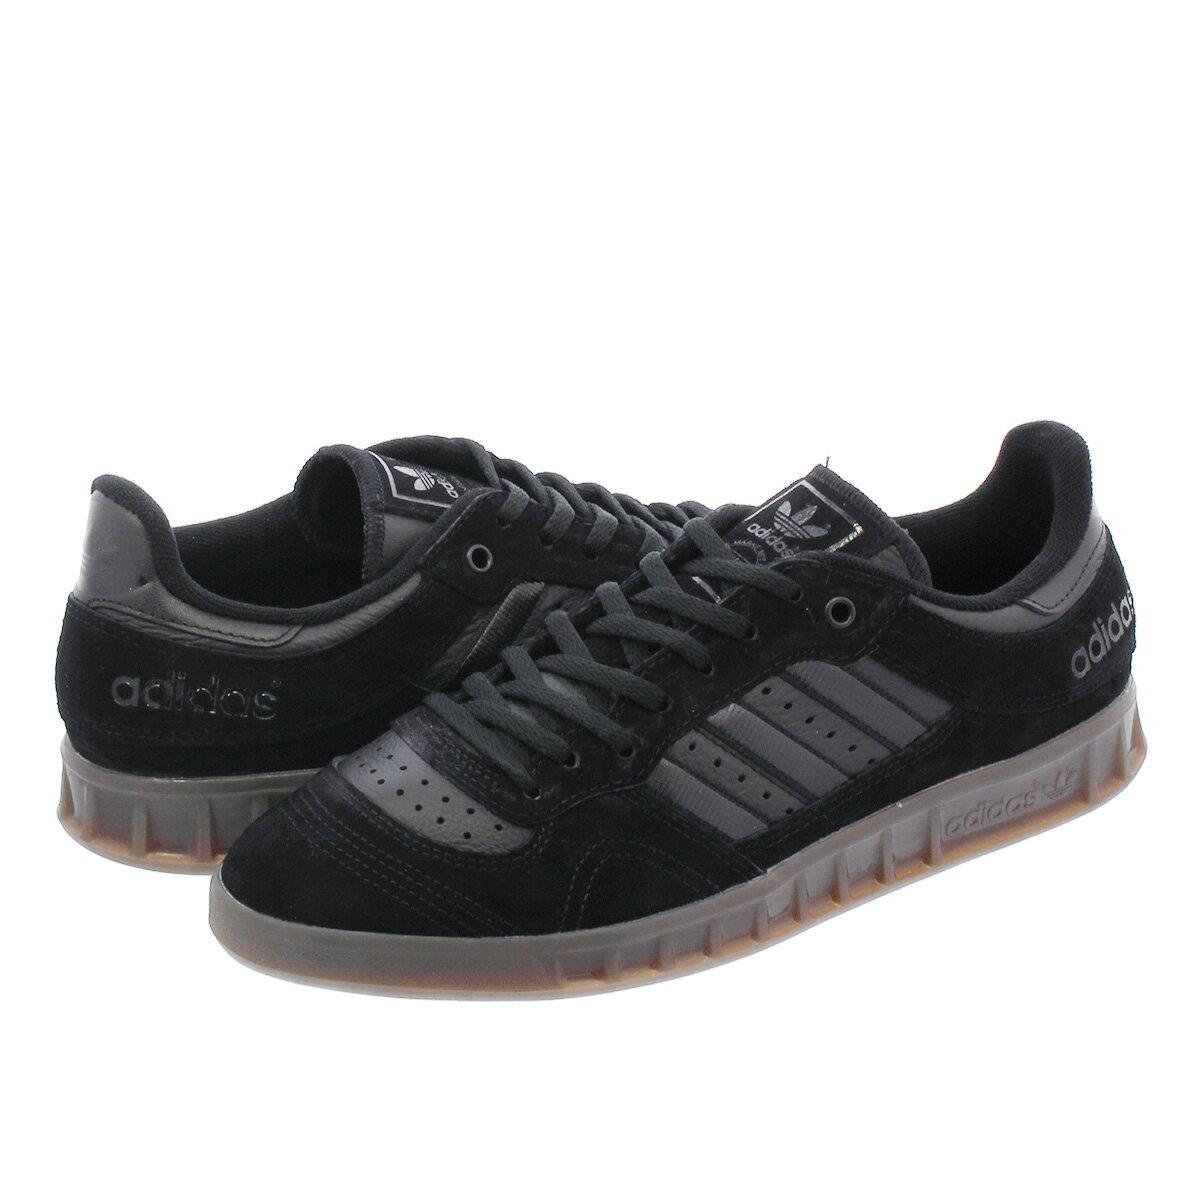 メンズ靴, スニーカー SALE adidas HANDBALL TOP CORE BLACKCORE BLACKGUM b38031